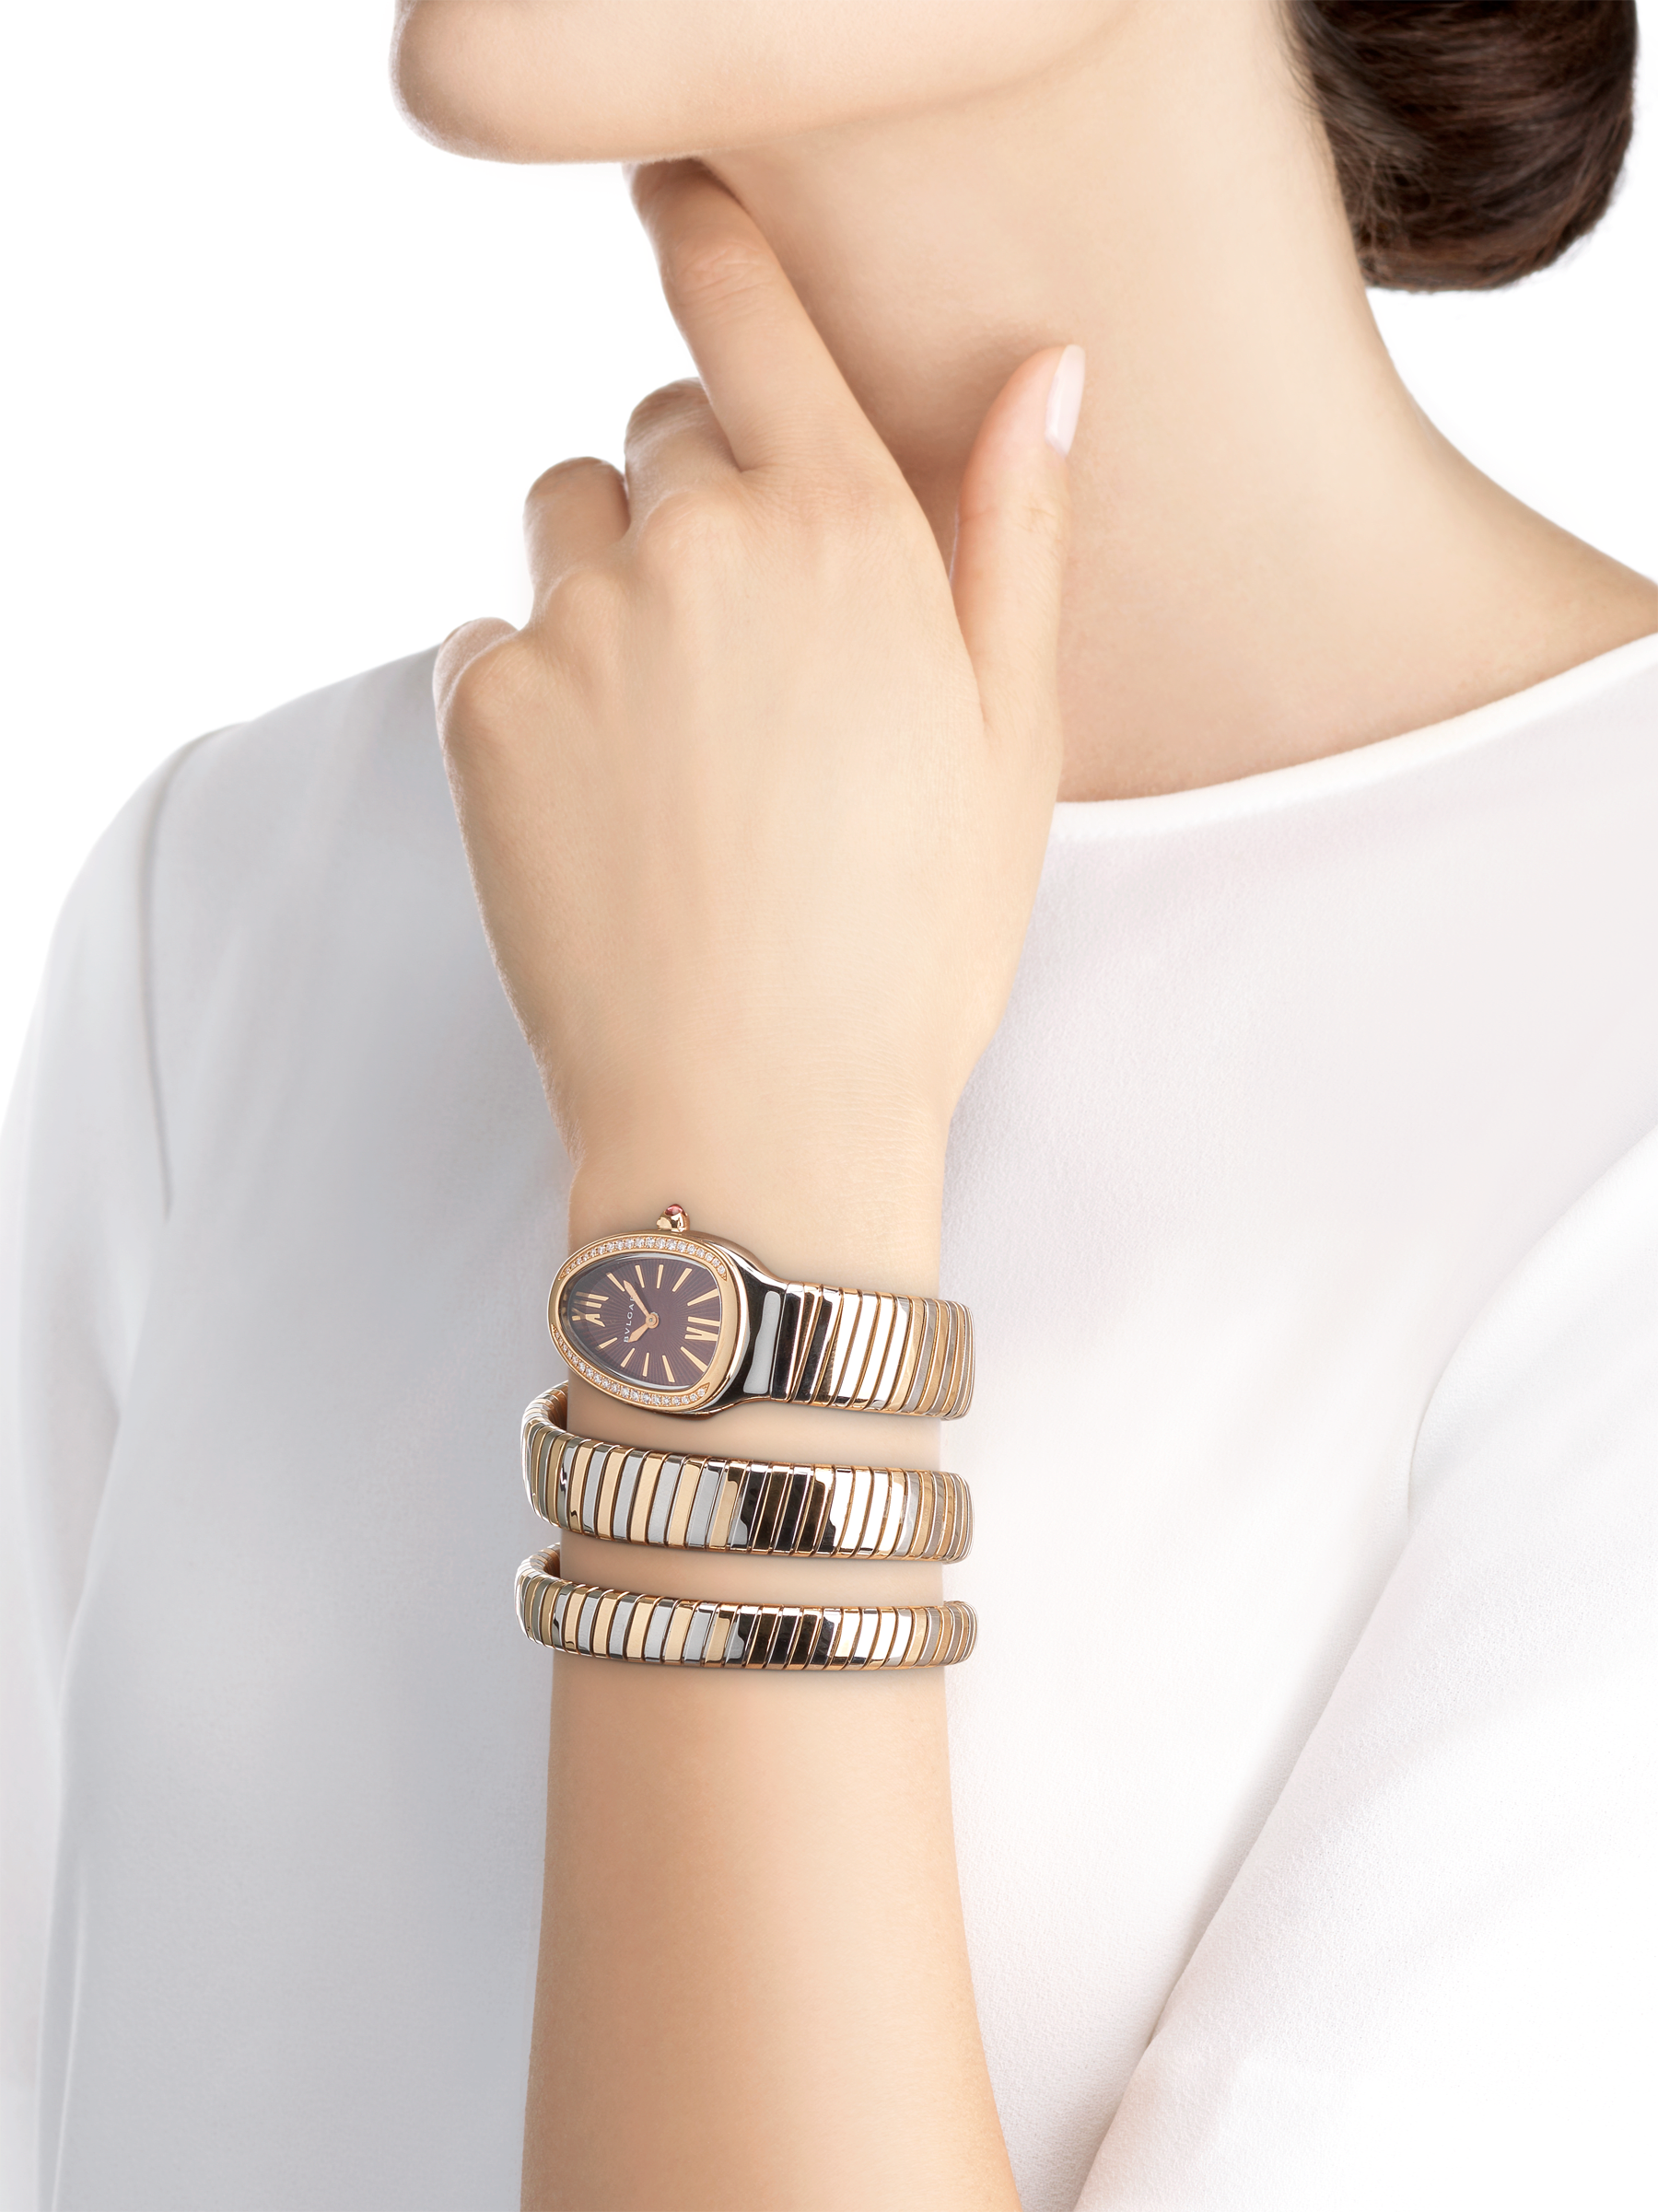 Serpenti Tubogas double spiral watch with stainless steel case, 18 kt rose gold bezel set with brilliant-cut diamonds, brown dial with guilloché soleil treatment, stainless steel and 18 kt rose gold bracelet 103070 image 4